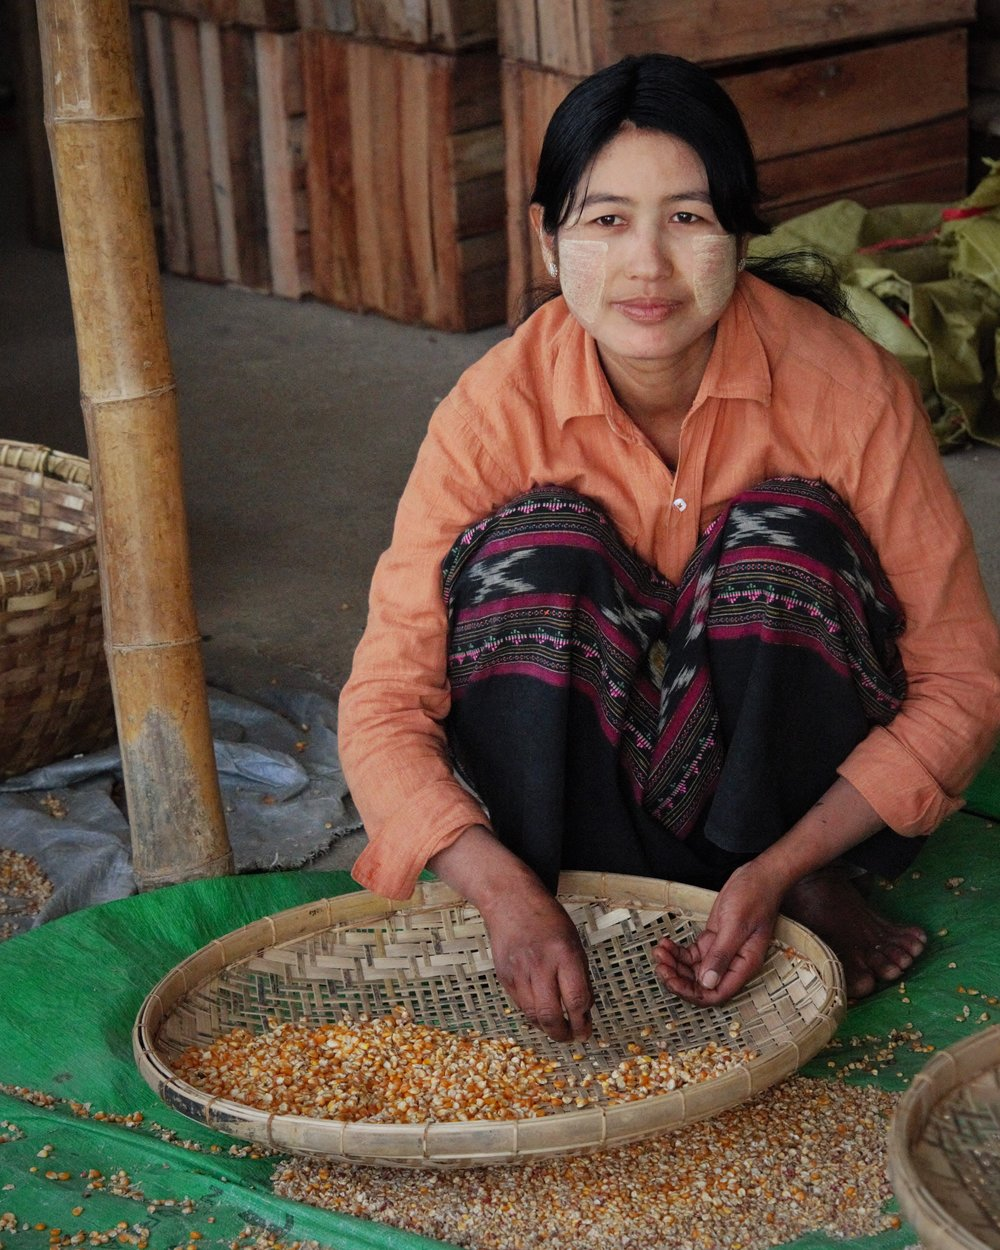 Sifting corn, Inle Lake